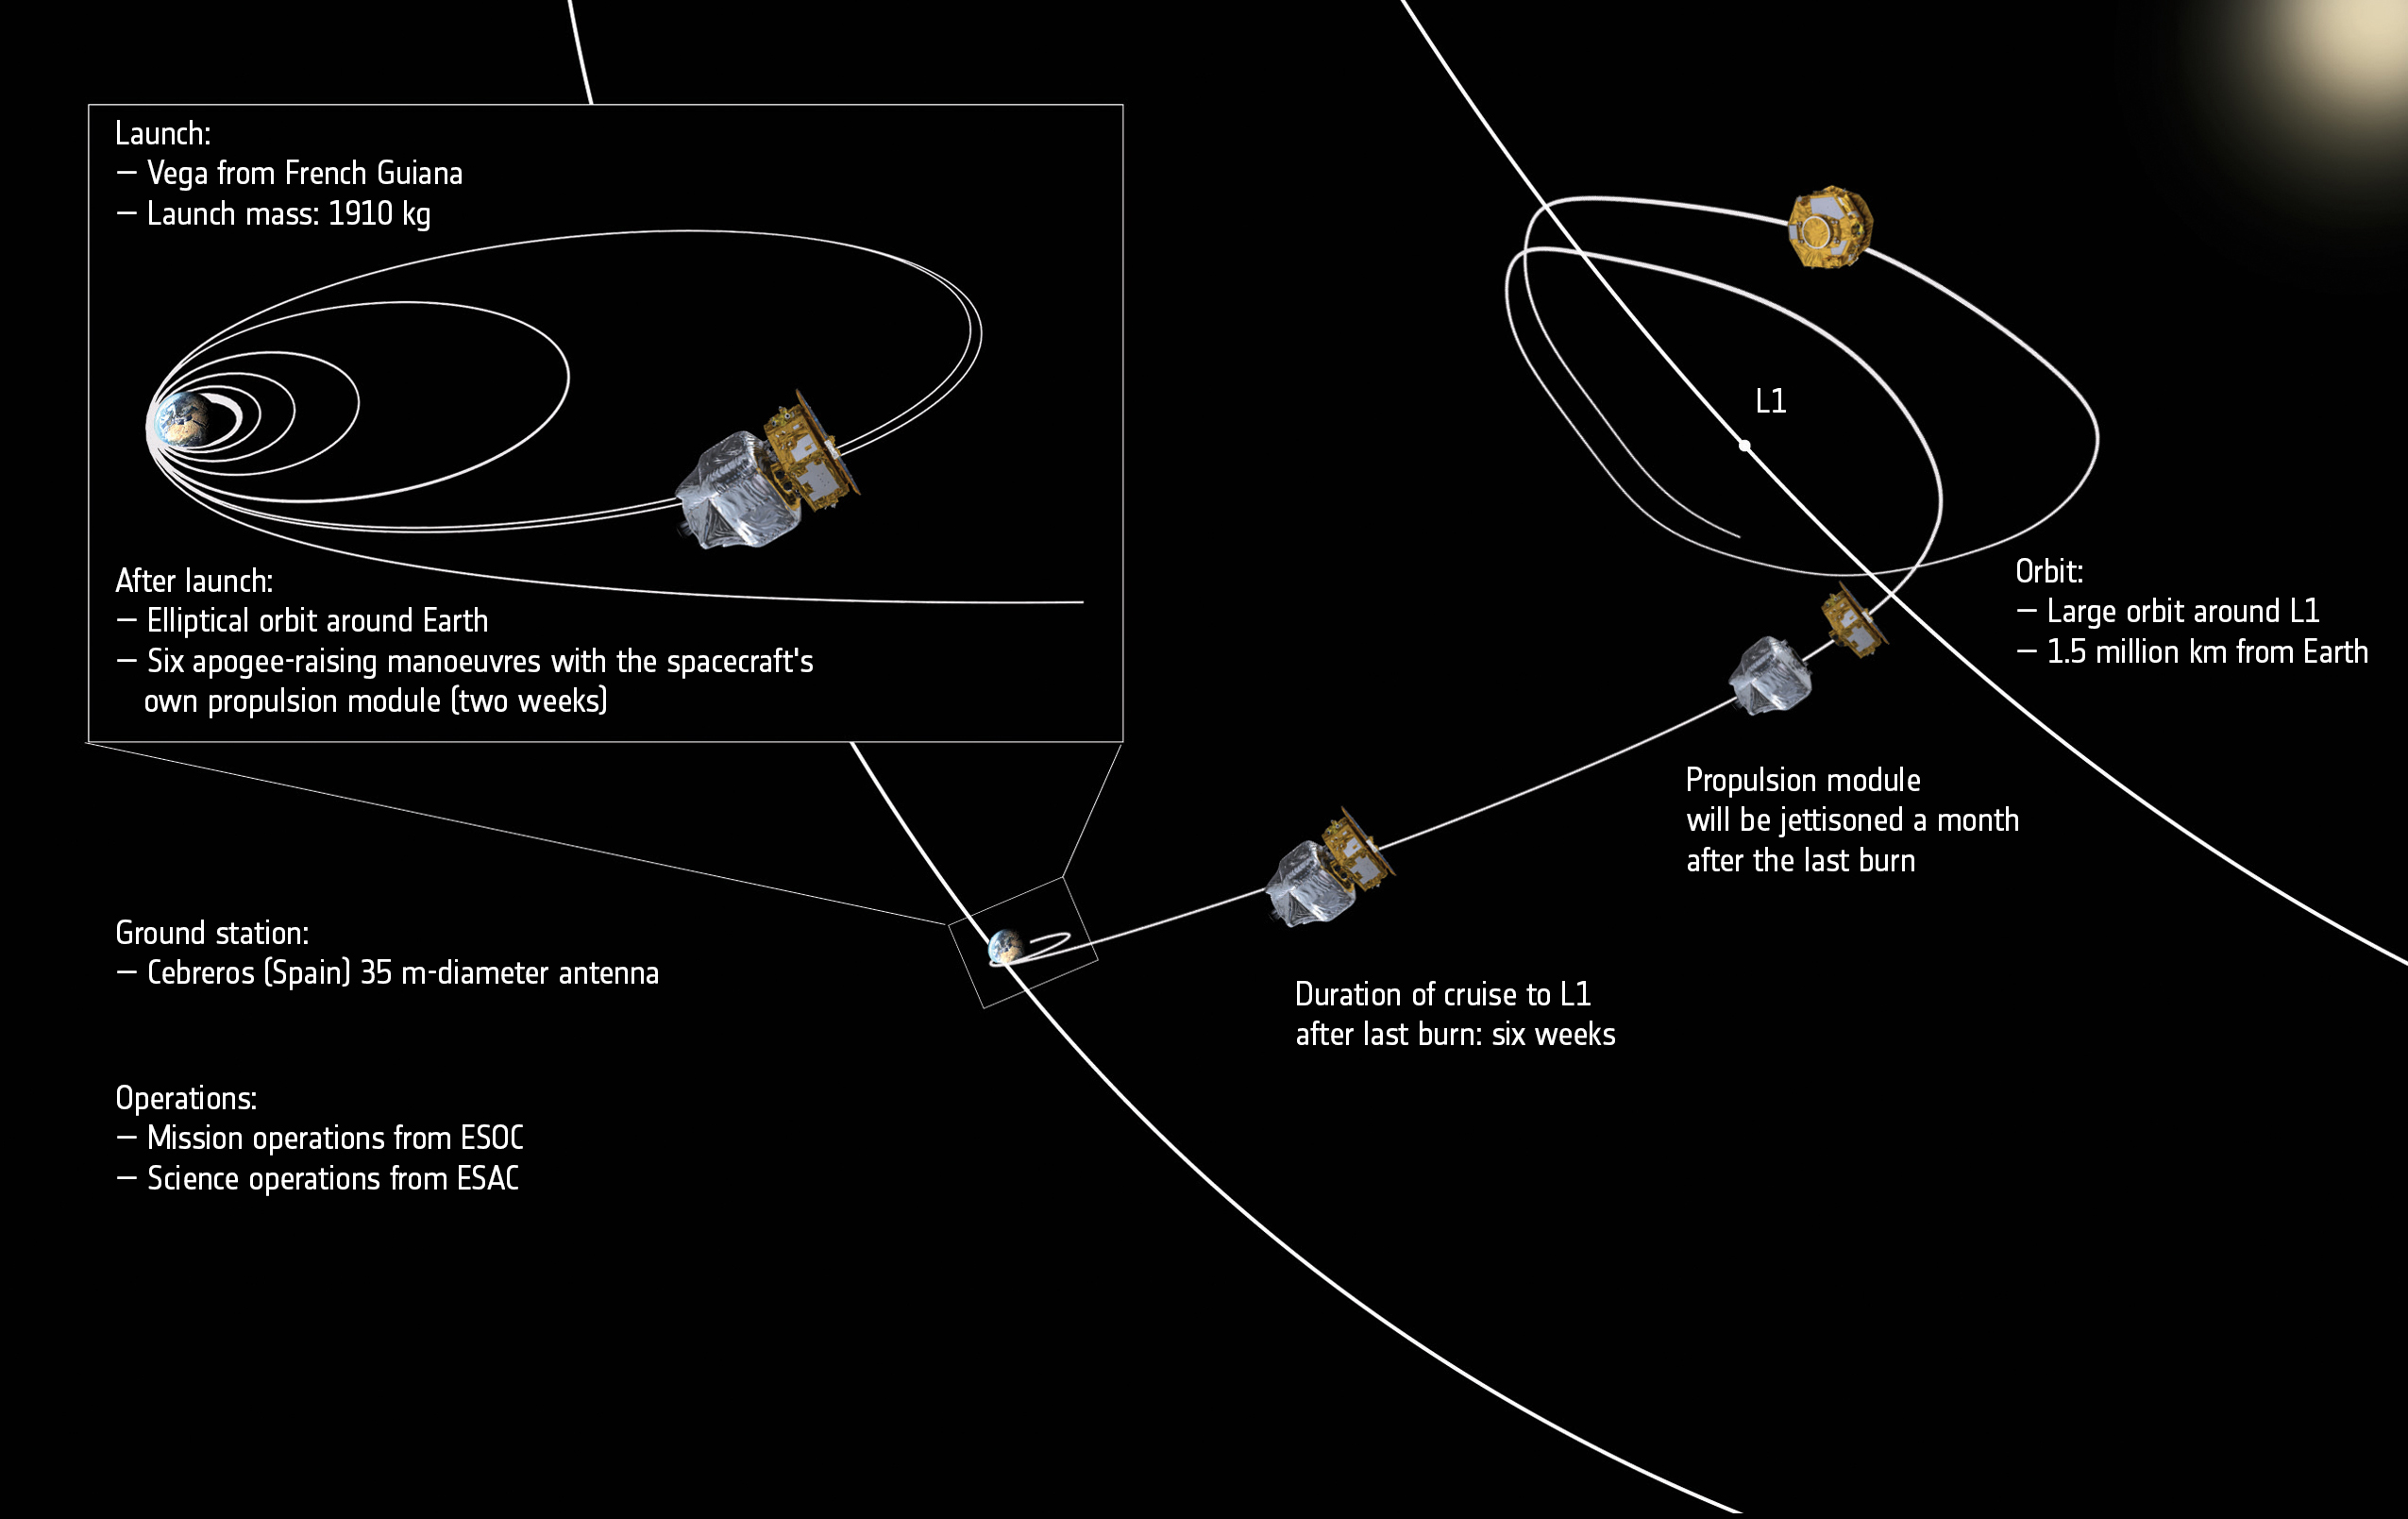 This chart shows the journey of LISA Pathfinder from Earth to its orbit around the L1 Lagrange point. Credit: ESA/ATG medialab